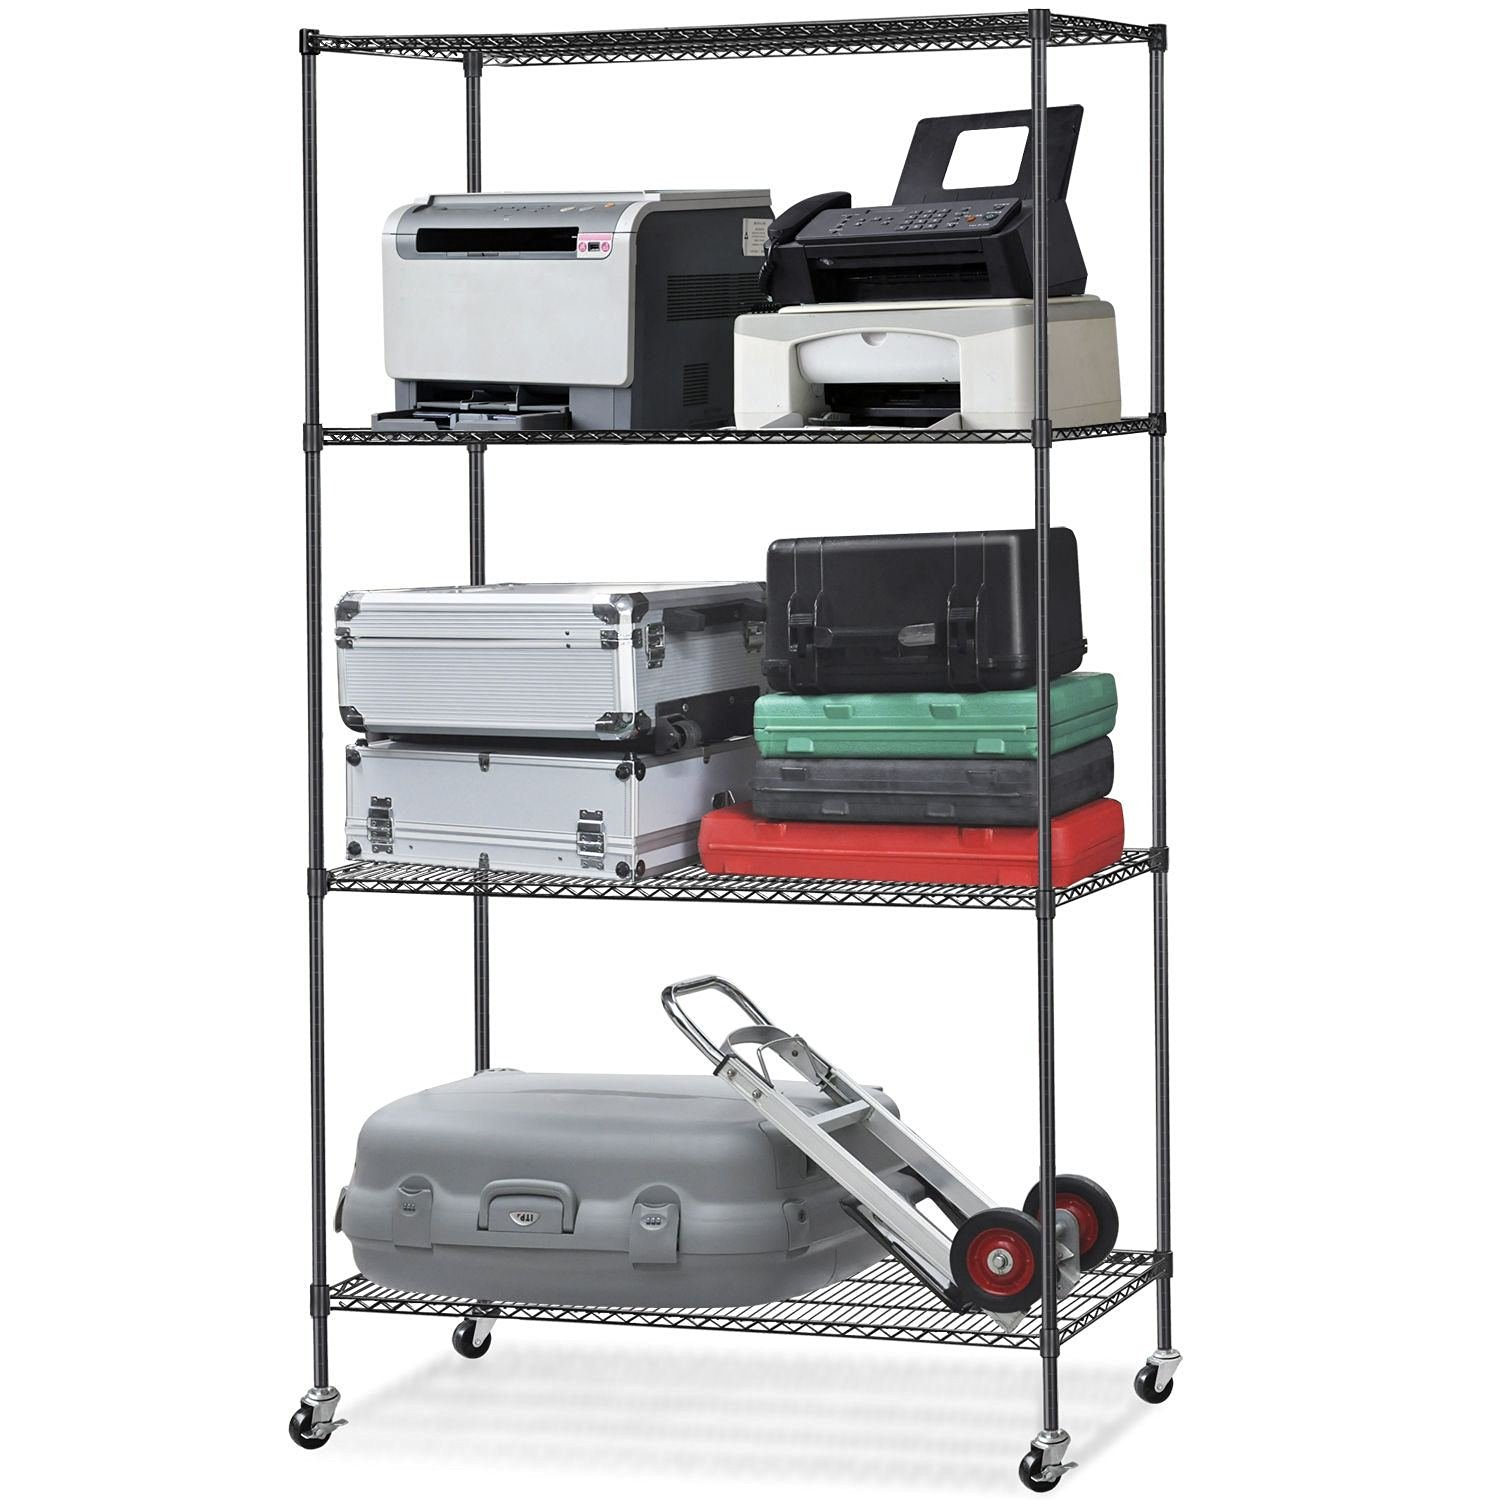 Cheap 5 Tier Metal Shelving, find 5 Tier Metal Shelving deals on ...